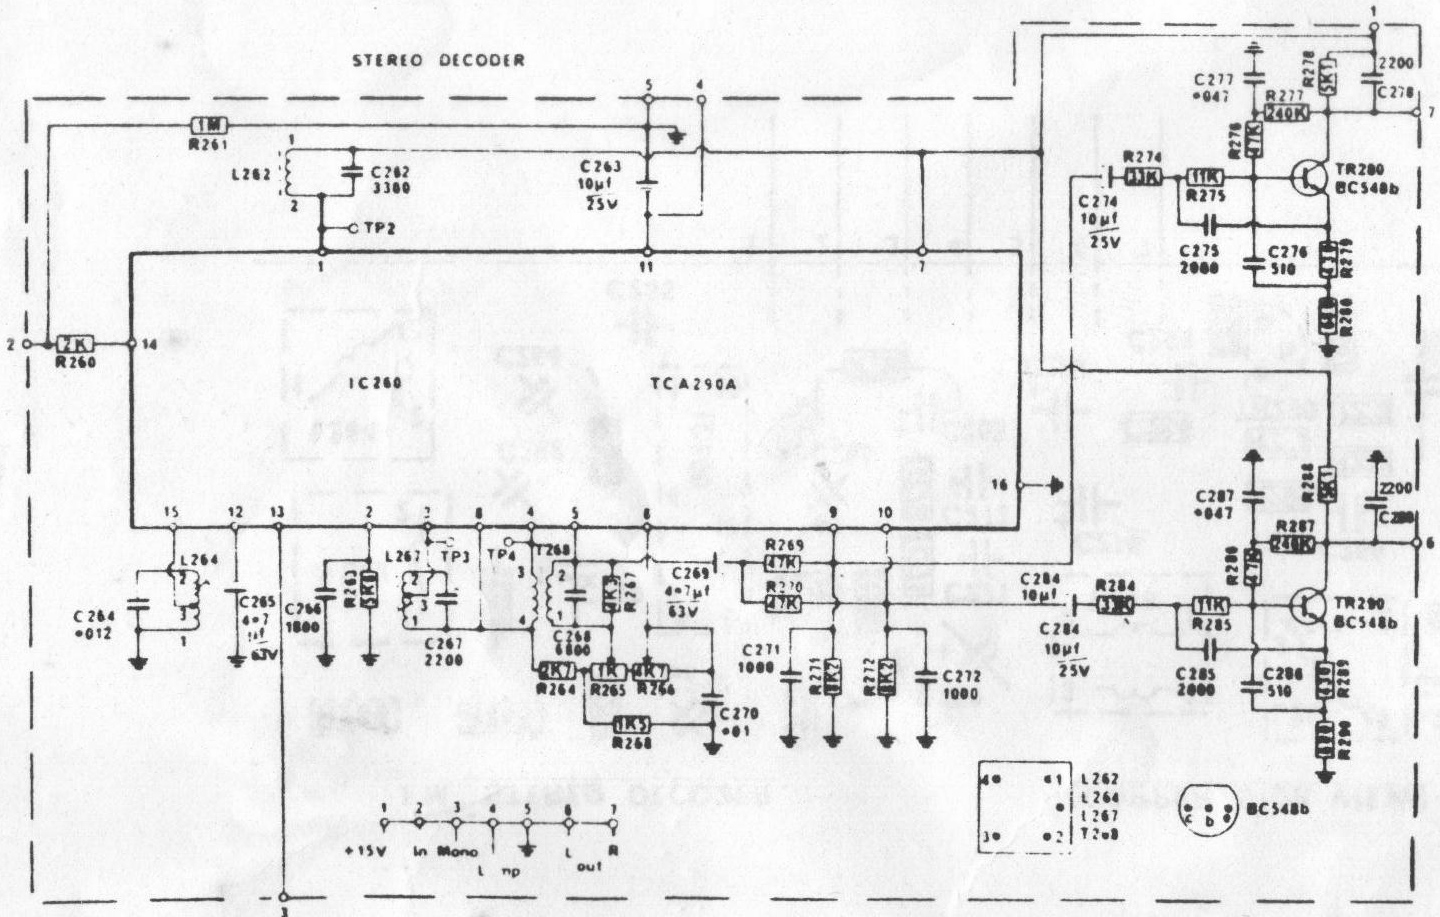 stereo decoder circuit auto electrical wiring diagramstereo decoder circuit